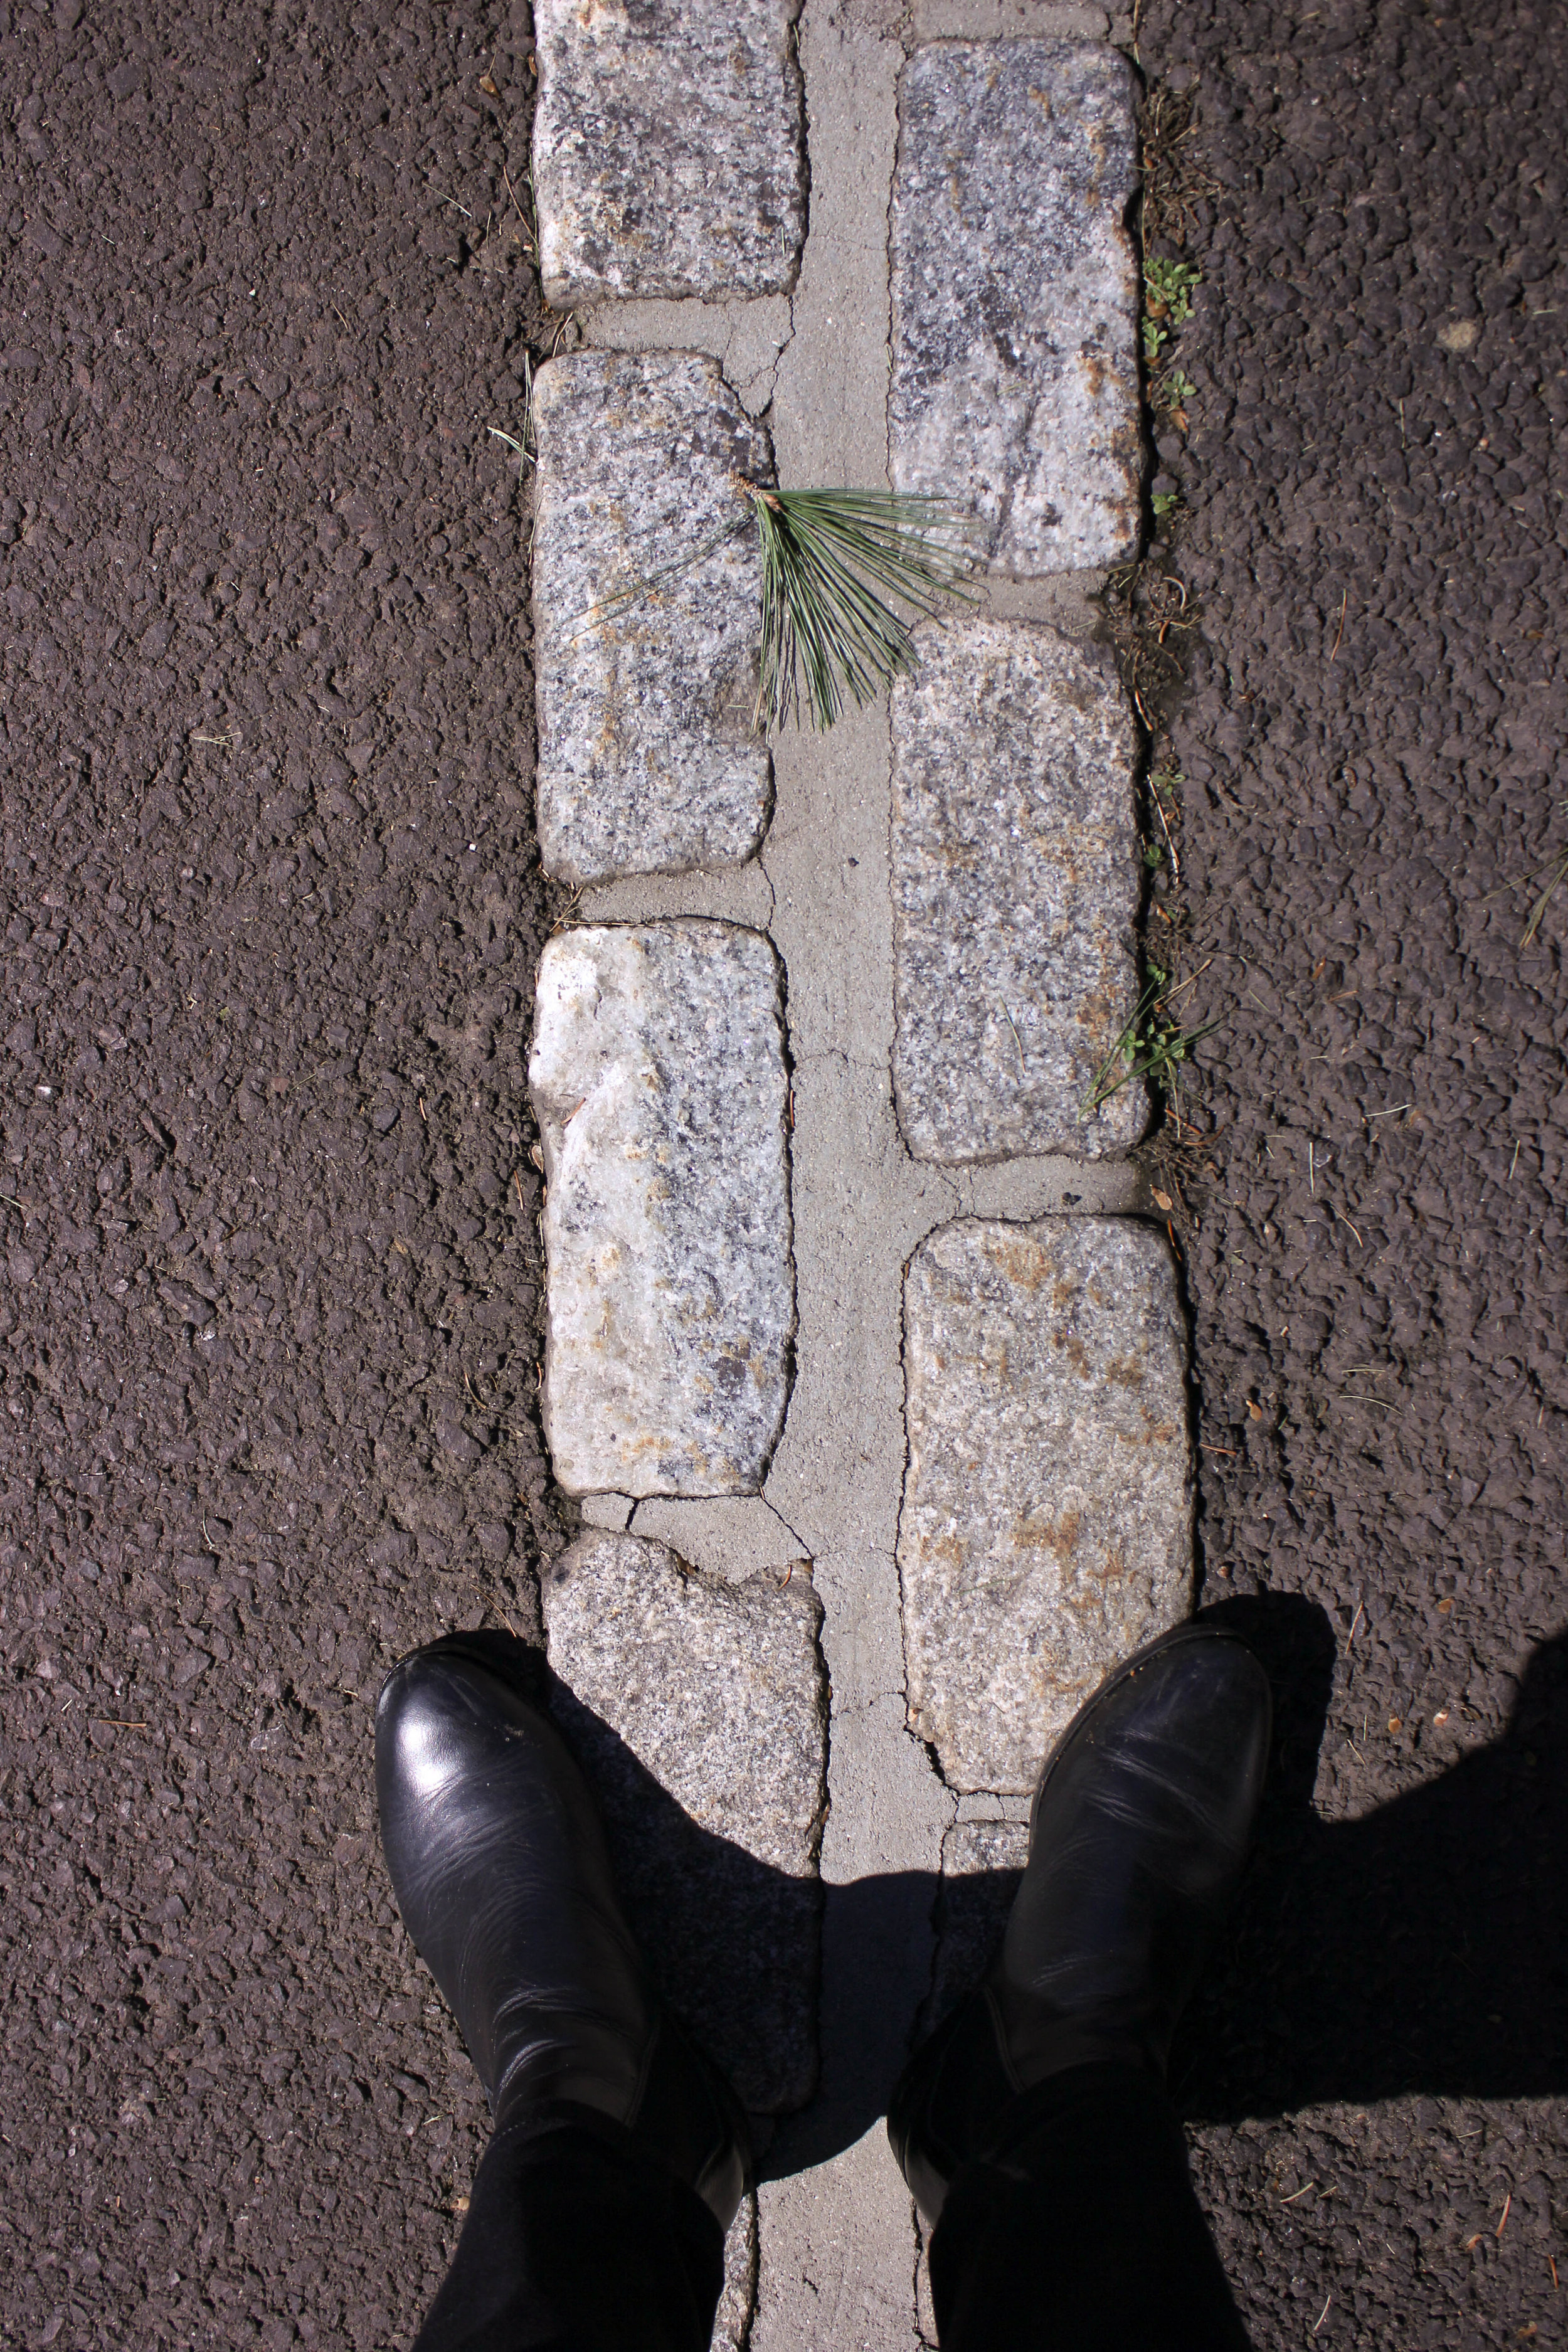 shoes and stones-9656.jpg